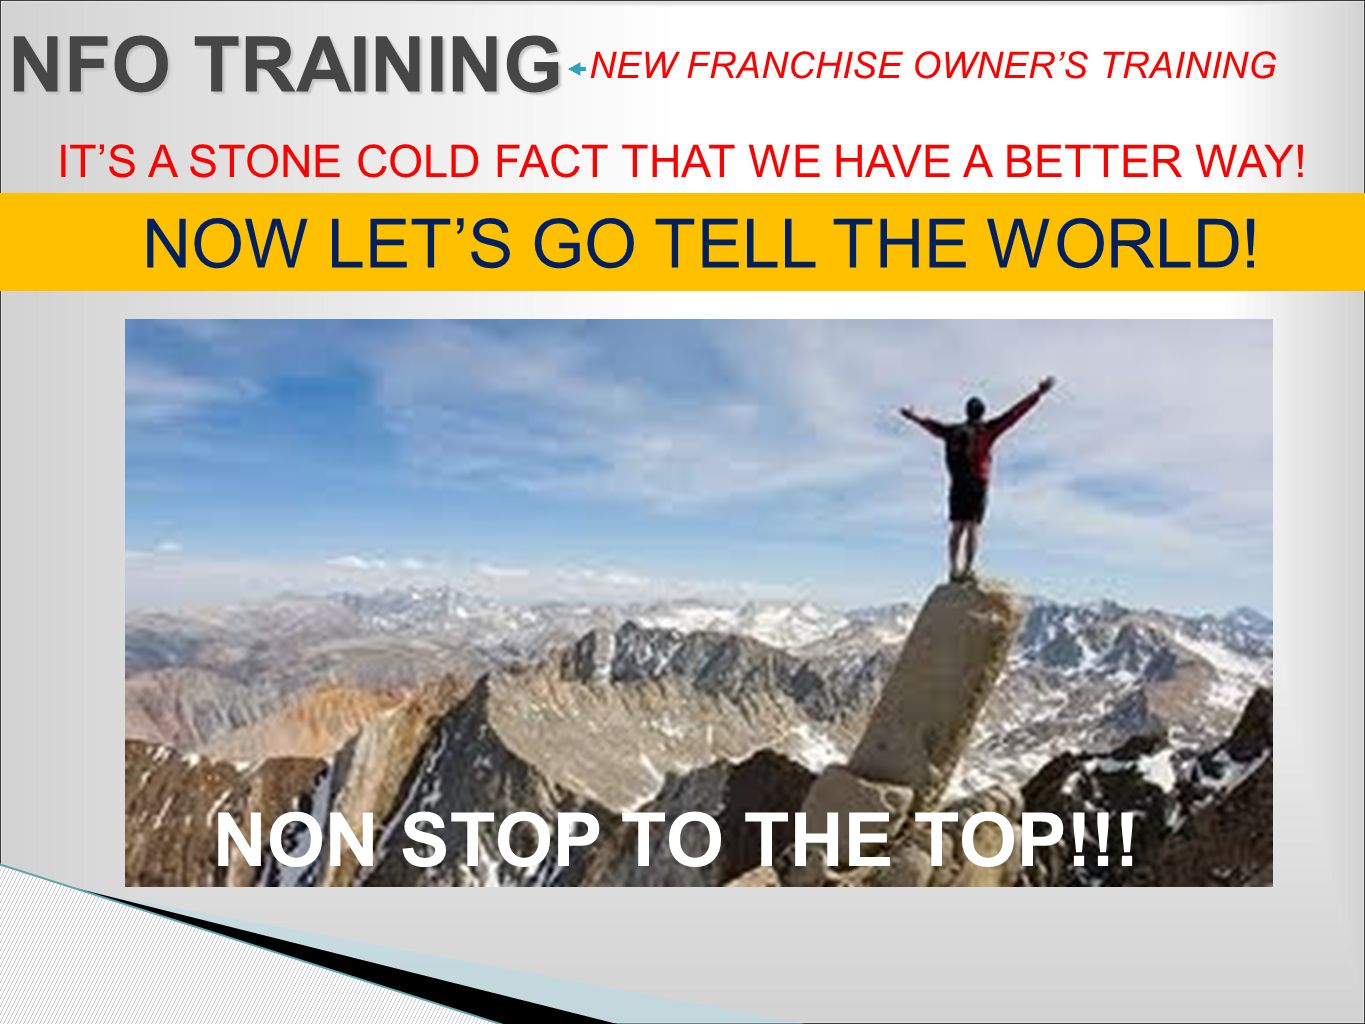 NFO TRAINING NON STOP TO THE TOP!!! NOW LET'S GO TELL THE WORLD!